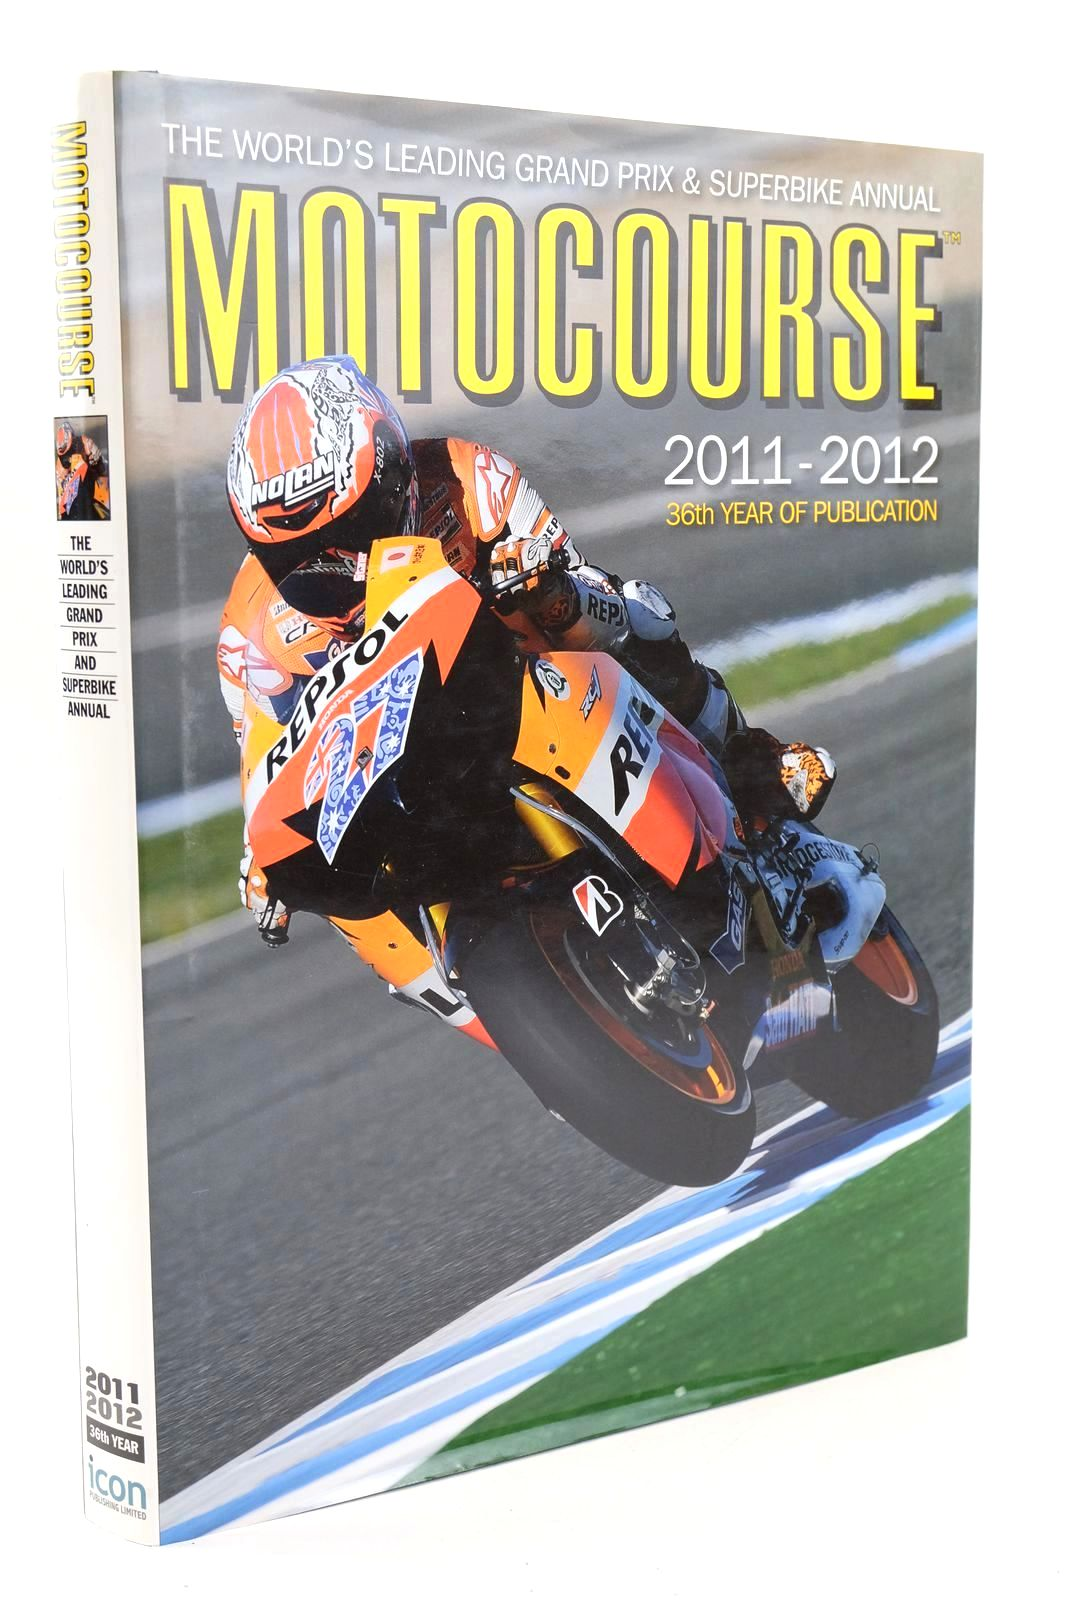 Photo of MOTOCOURSE 2011-2012 published by Icon Publishing Limited (STOCK CODE: 1319321)  for sale by Stella & Rose's Books